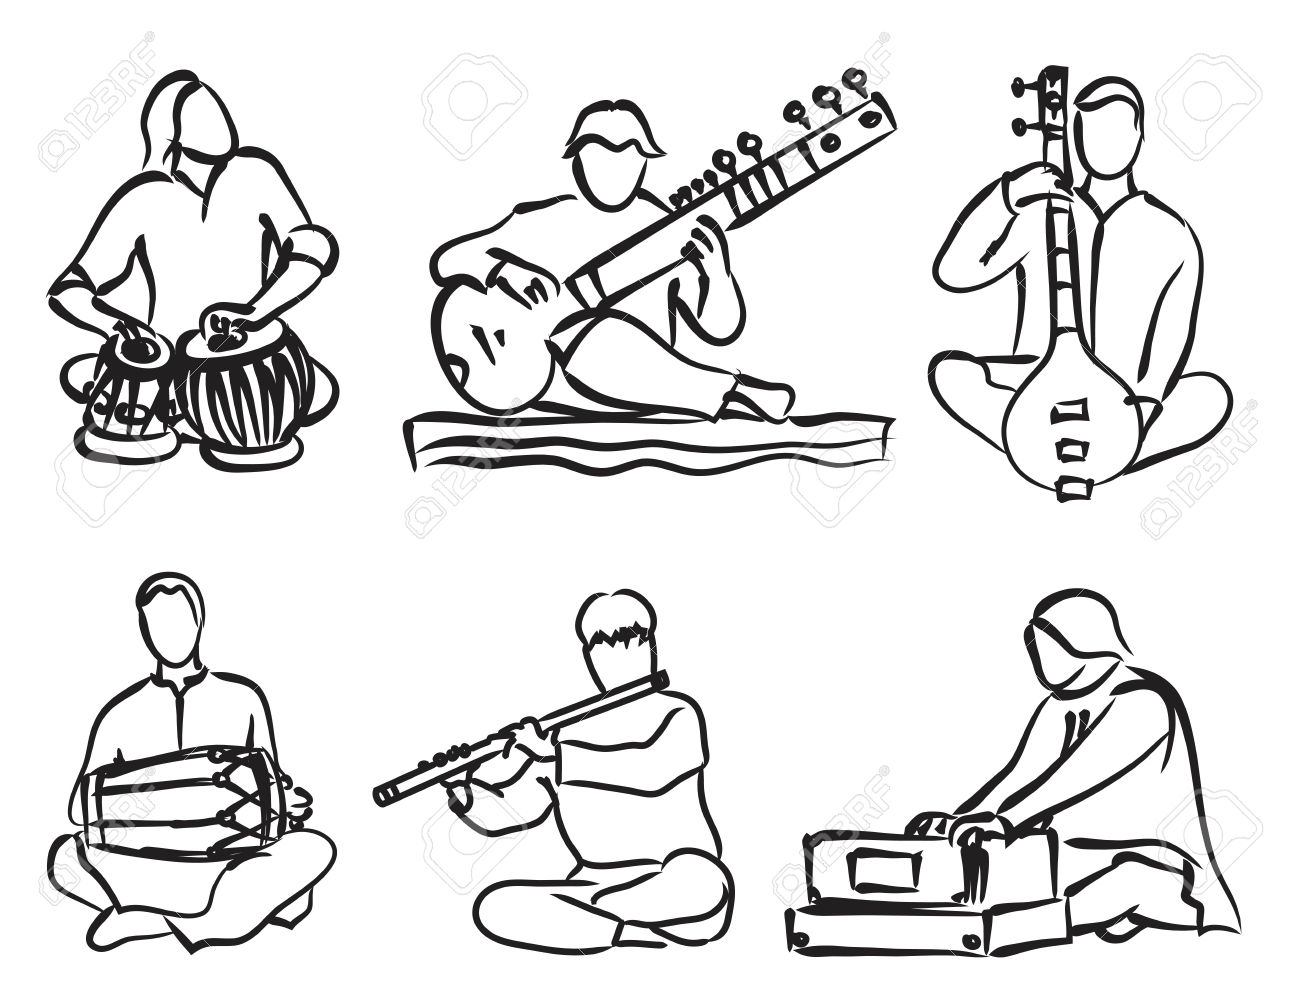 Indian traditional clipart jpg download Indian traditional clipart - ClipartFox jpg download